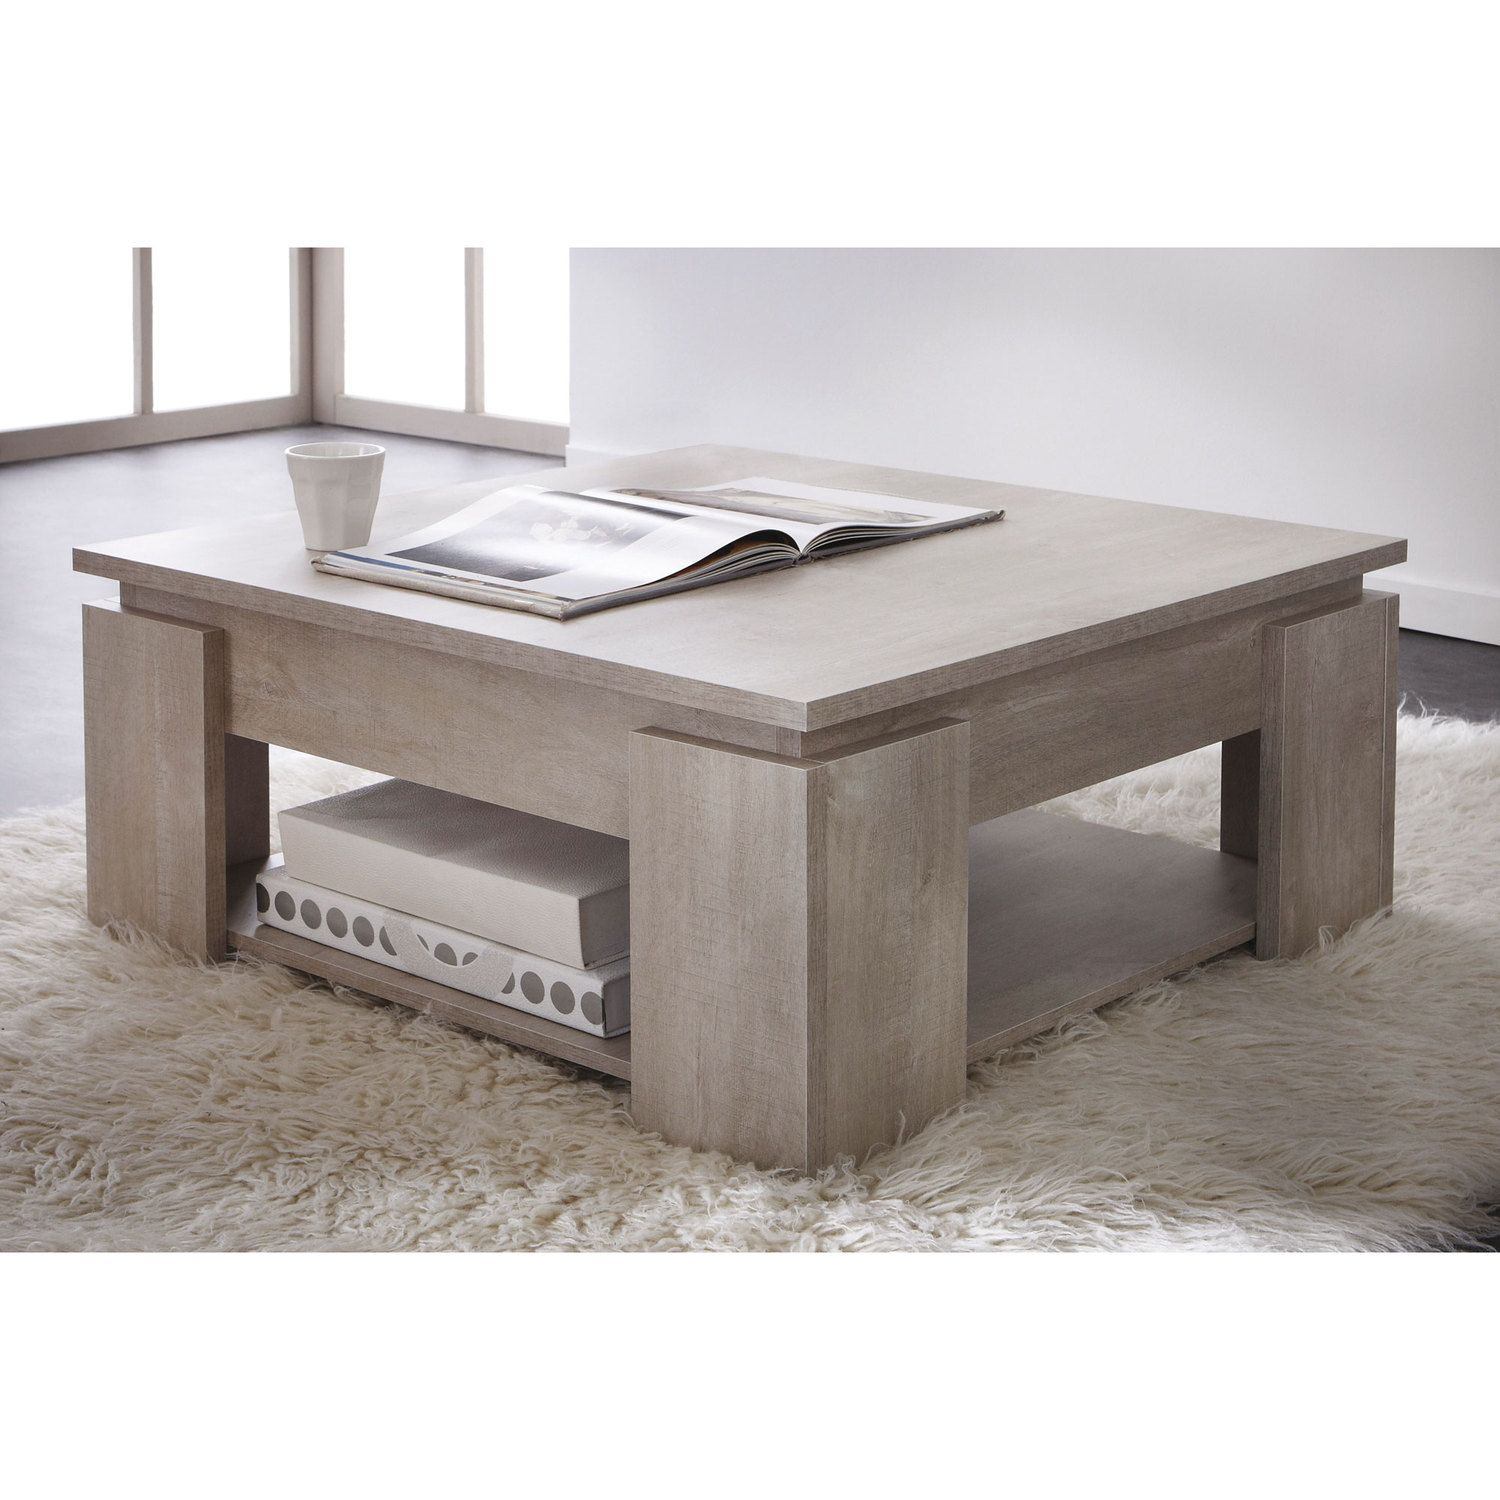 Ensemble Meuble Tv Table Basse Ensemble Table Basse Meuble Tv Segur 140cm Achat Vente Table